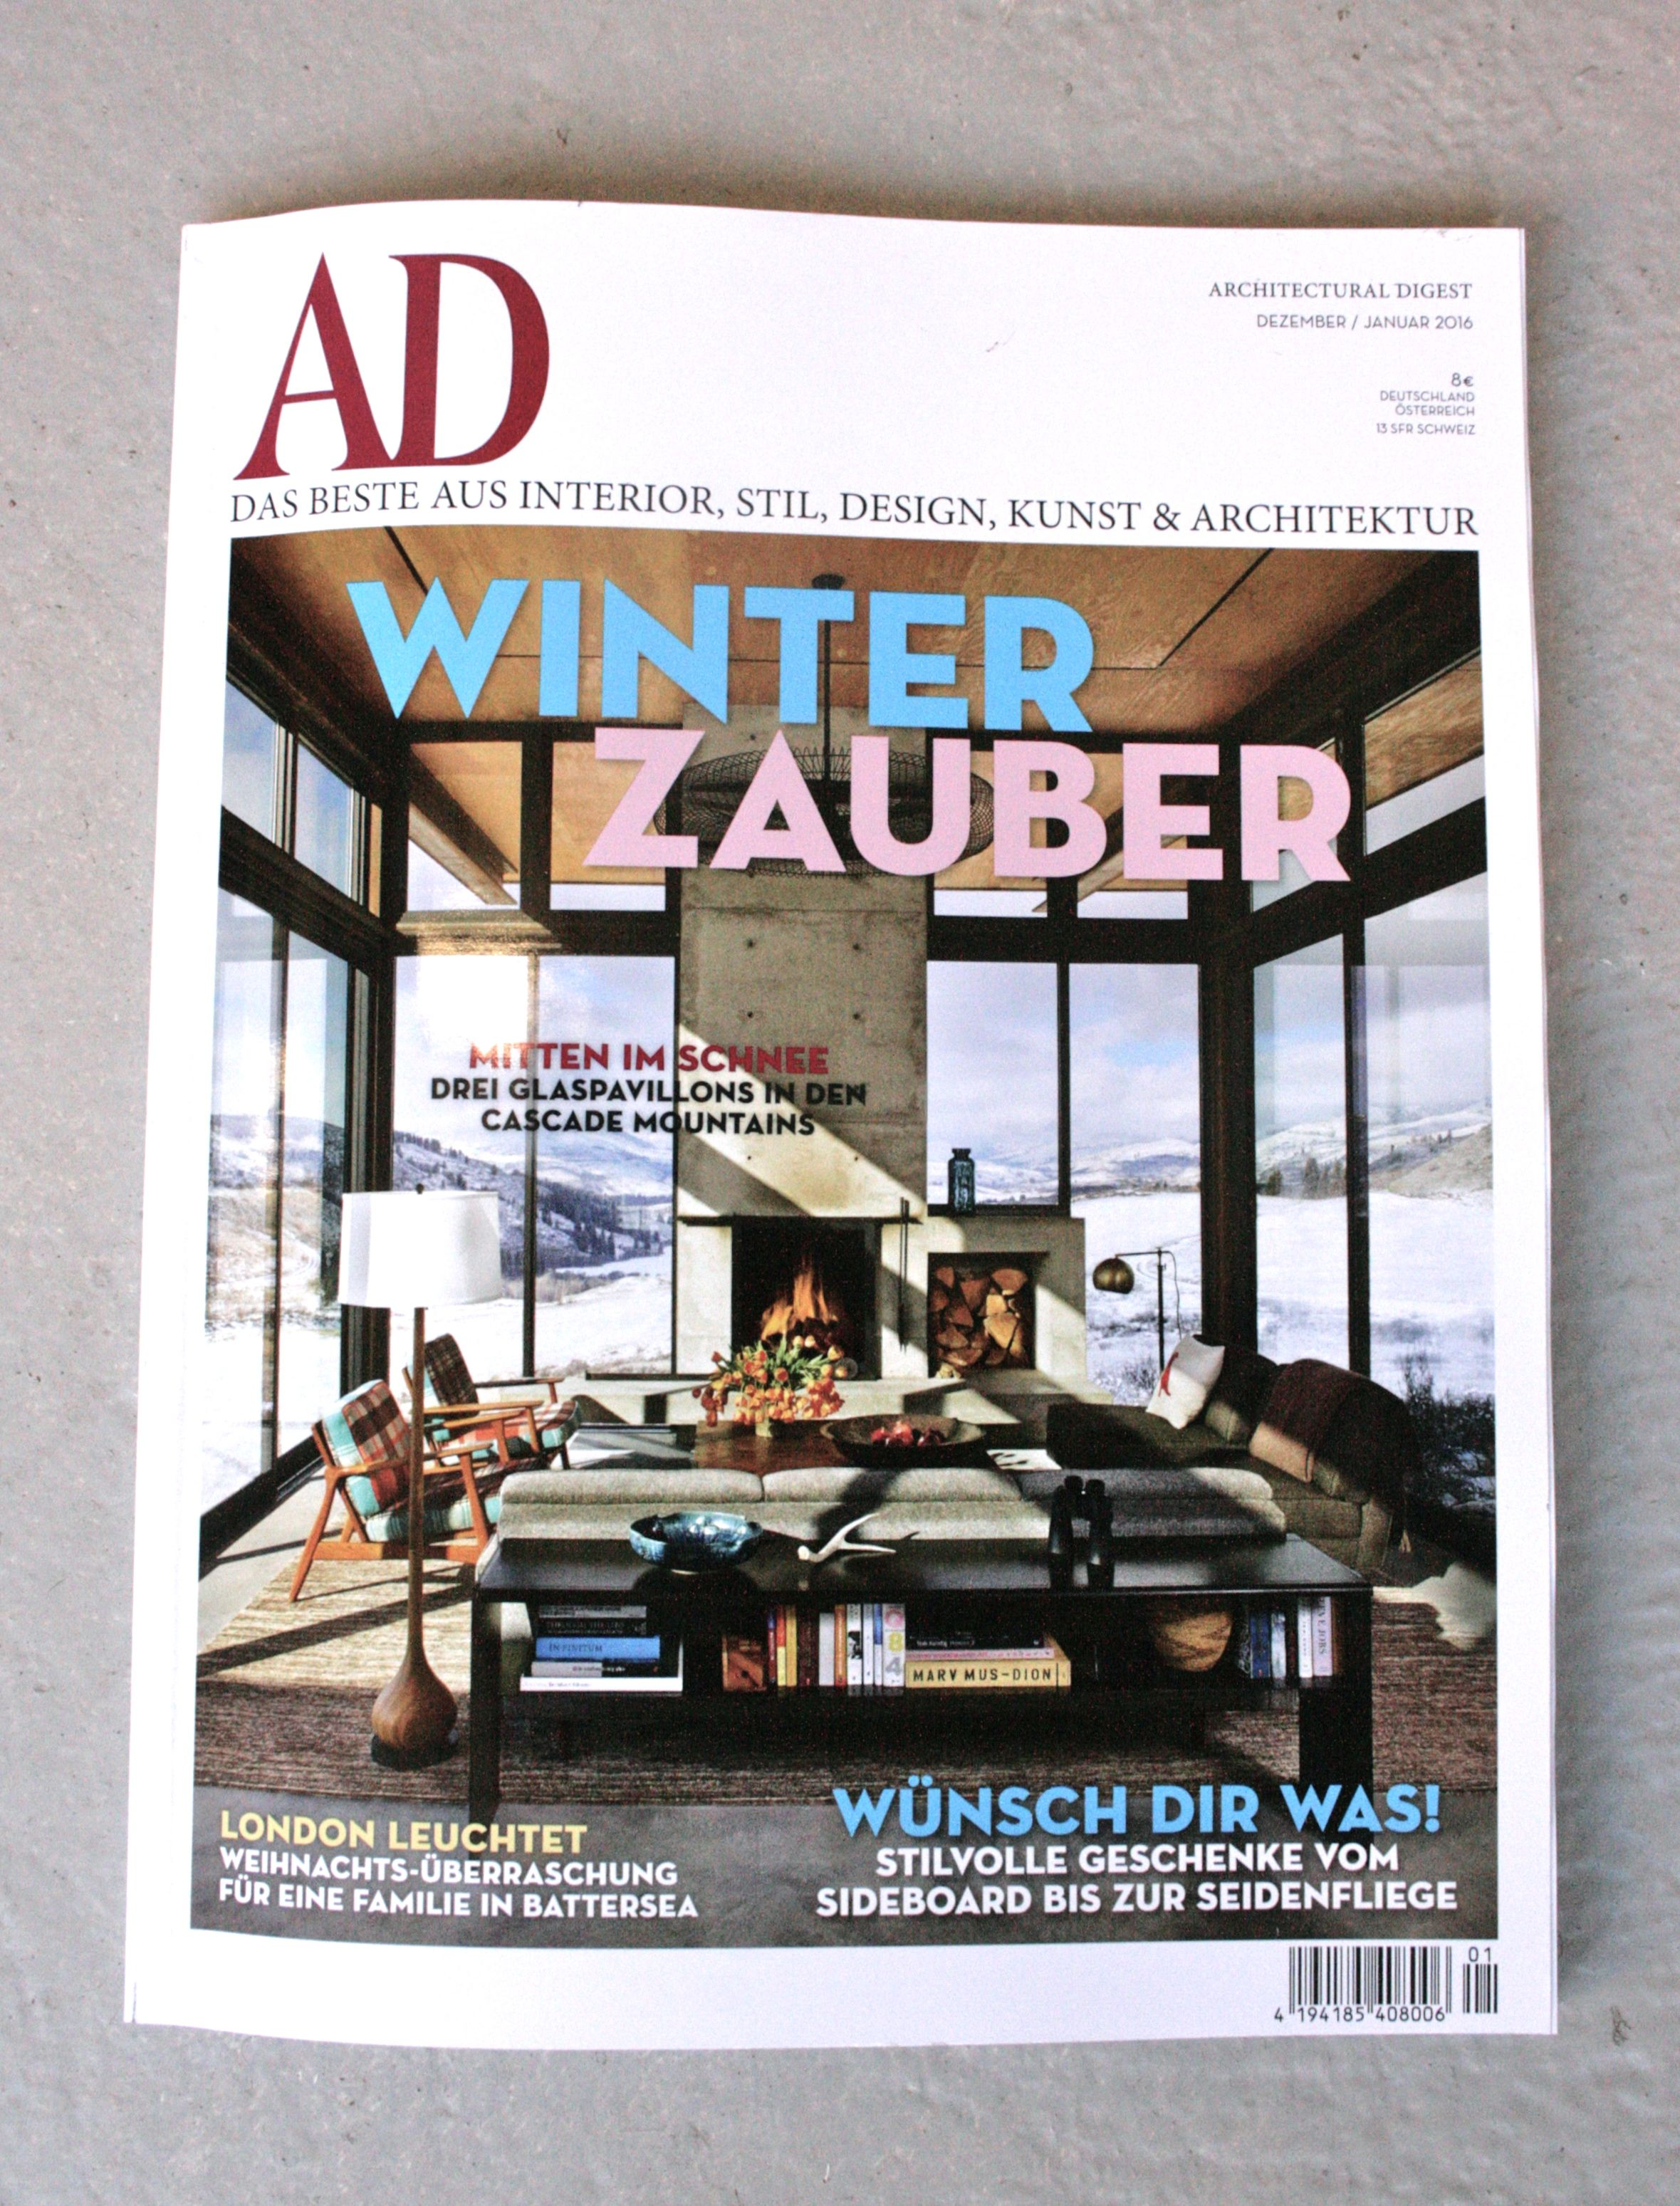 Architectural Digest Germany 2015 #andnewfurniture